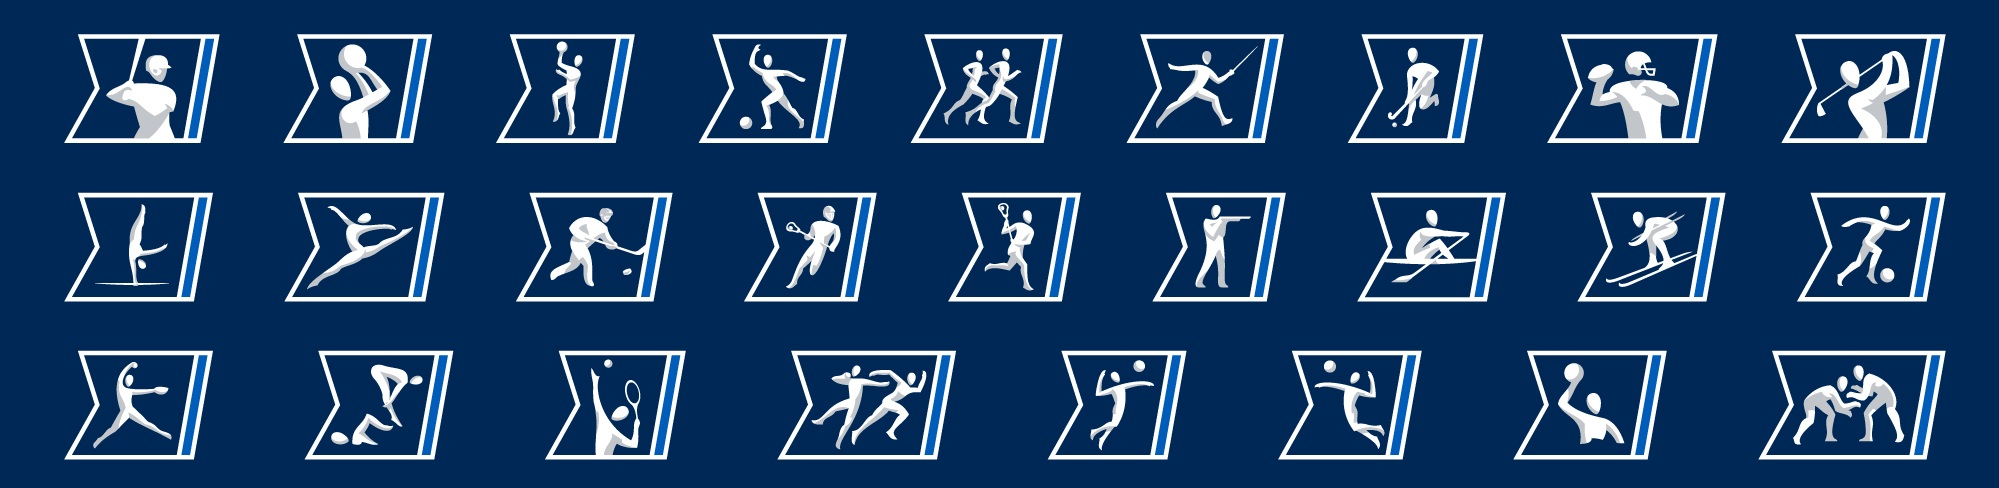 ncaa_championships_intro_icons_all.jpg